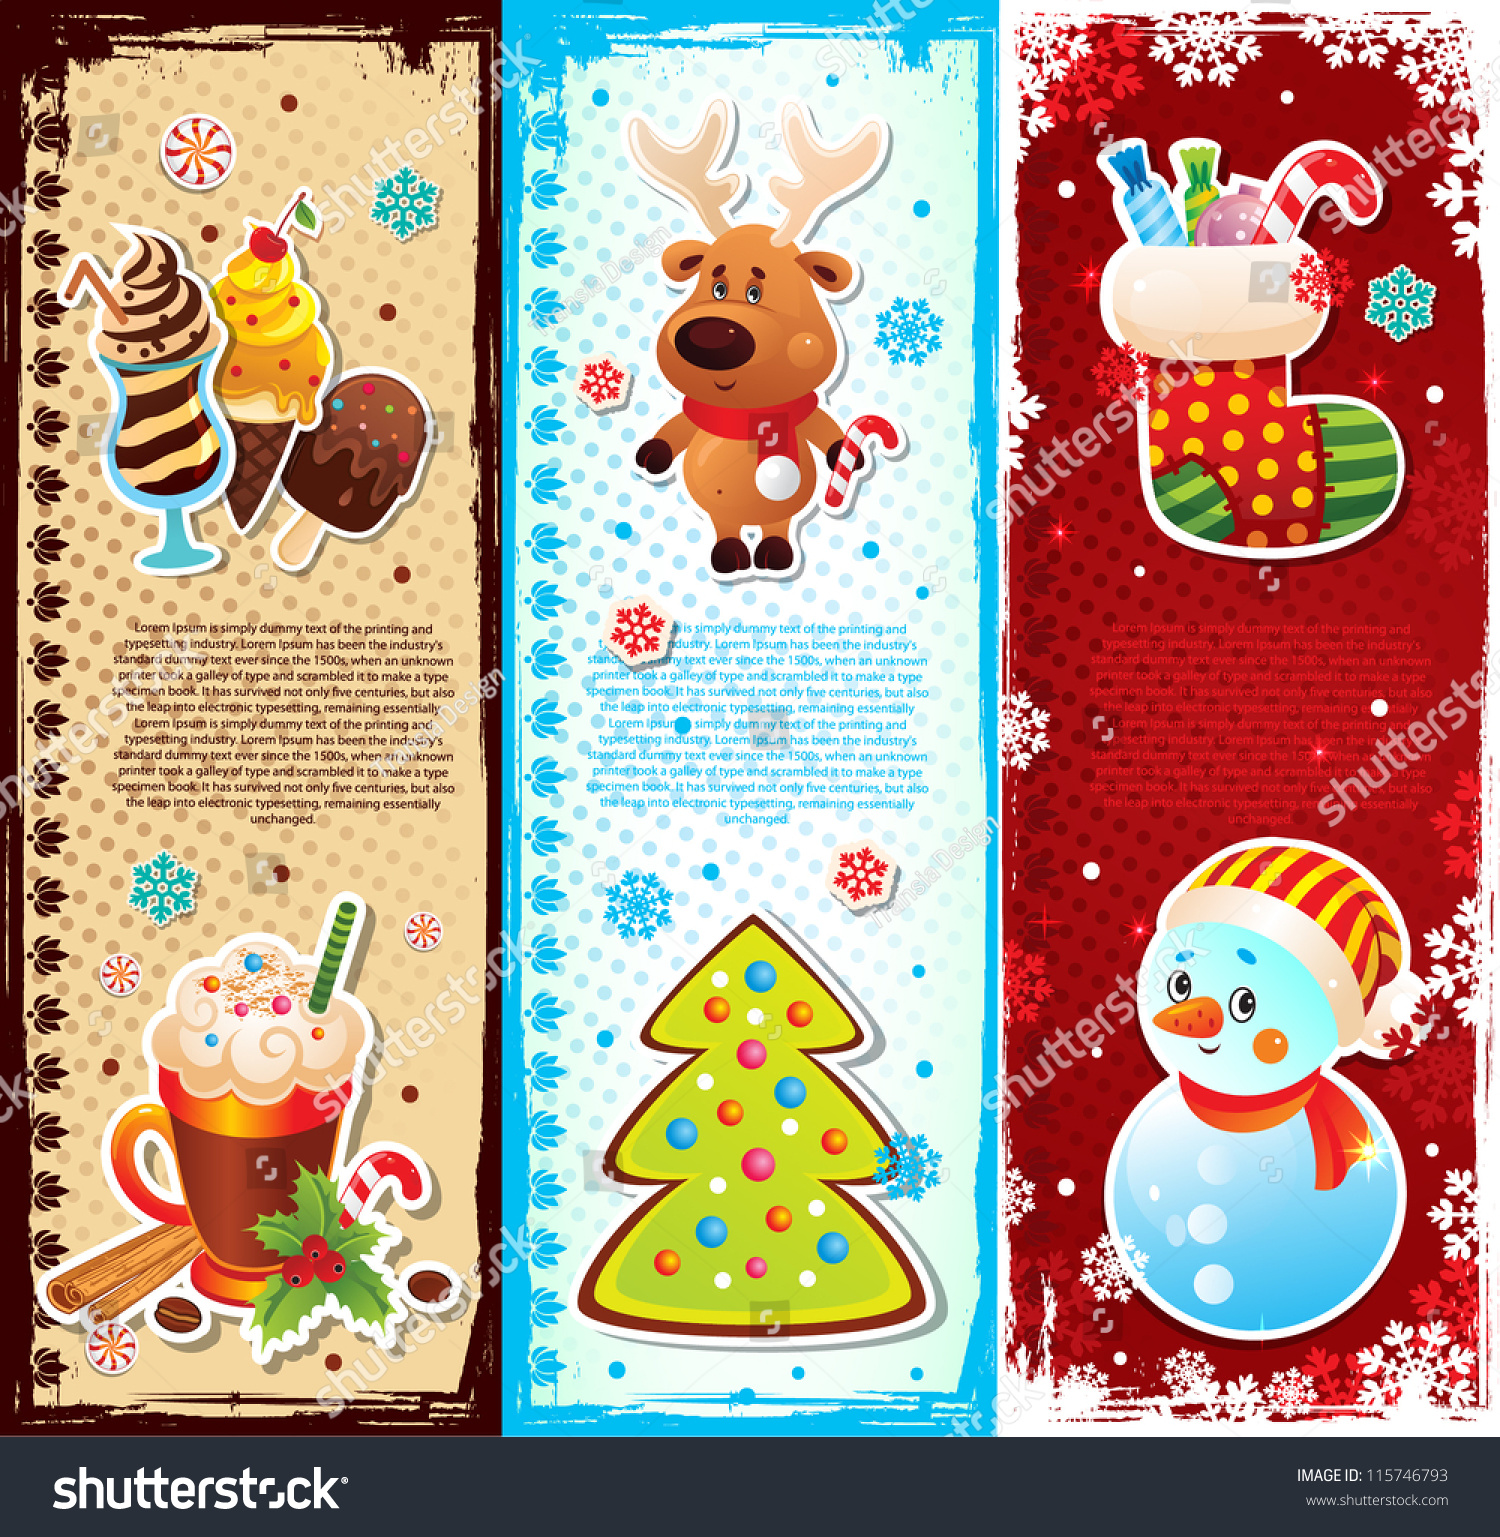 Doc460325 Christmas Bookmark Templates Christmas Bookmarks – Christmas Bookmark Templates